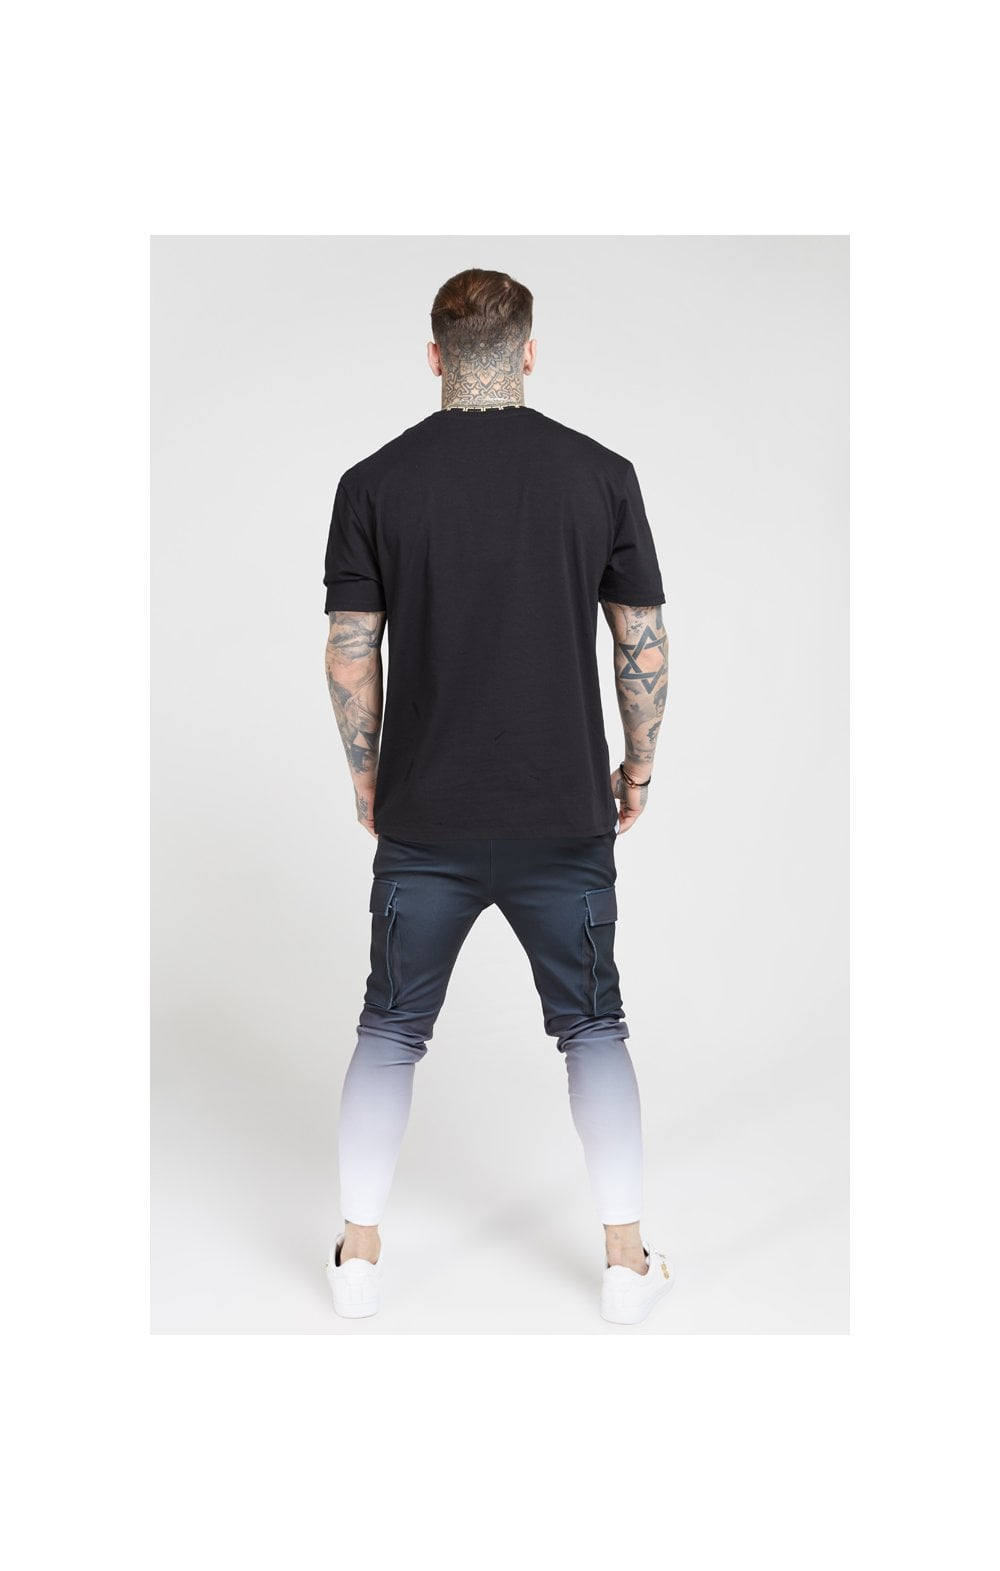 Load image into Gallery viewer, SikSilk Poly Athlete Cargo Pants - Black & White (5)